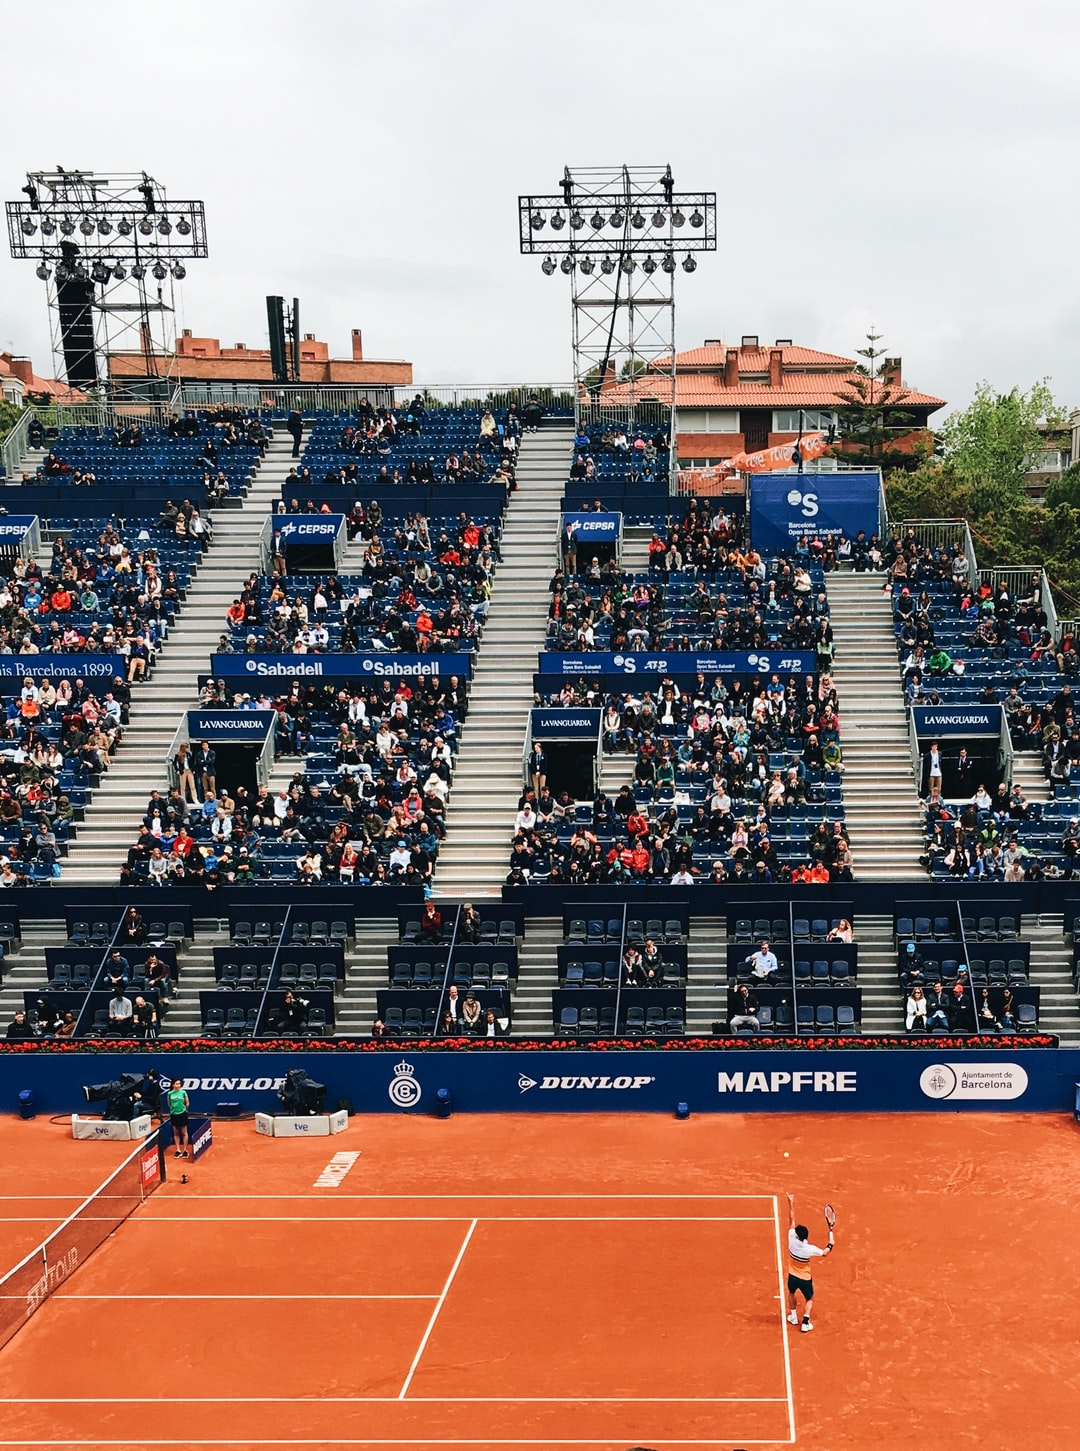 Tennis' fan since I was a boy, this year I got the opportunity to went to the Barcelona's Open Banc Sabadell Tournament. Where tennis' stars like Rafael Nadal, Alexander Zverev, Dominic Thiem and so on took part. It was an incredible.